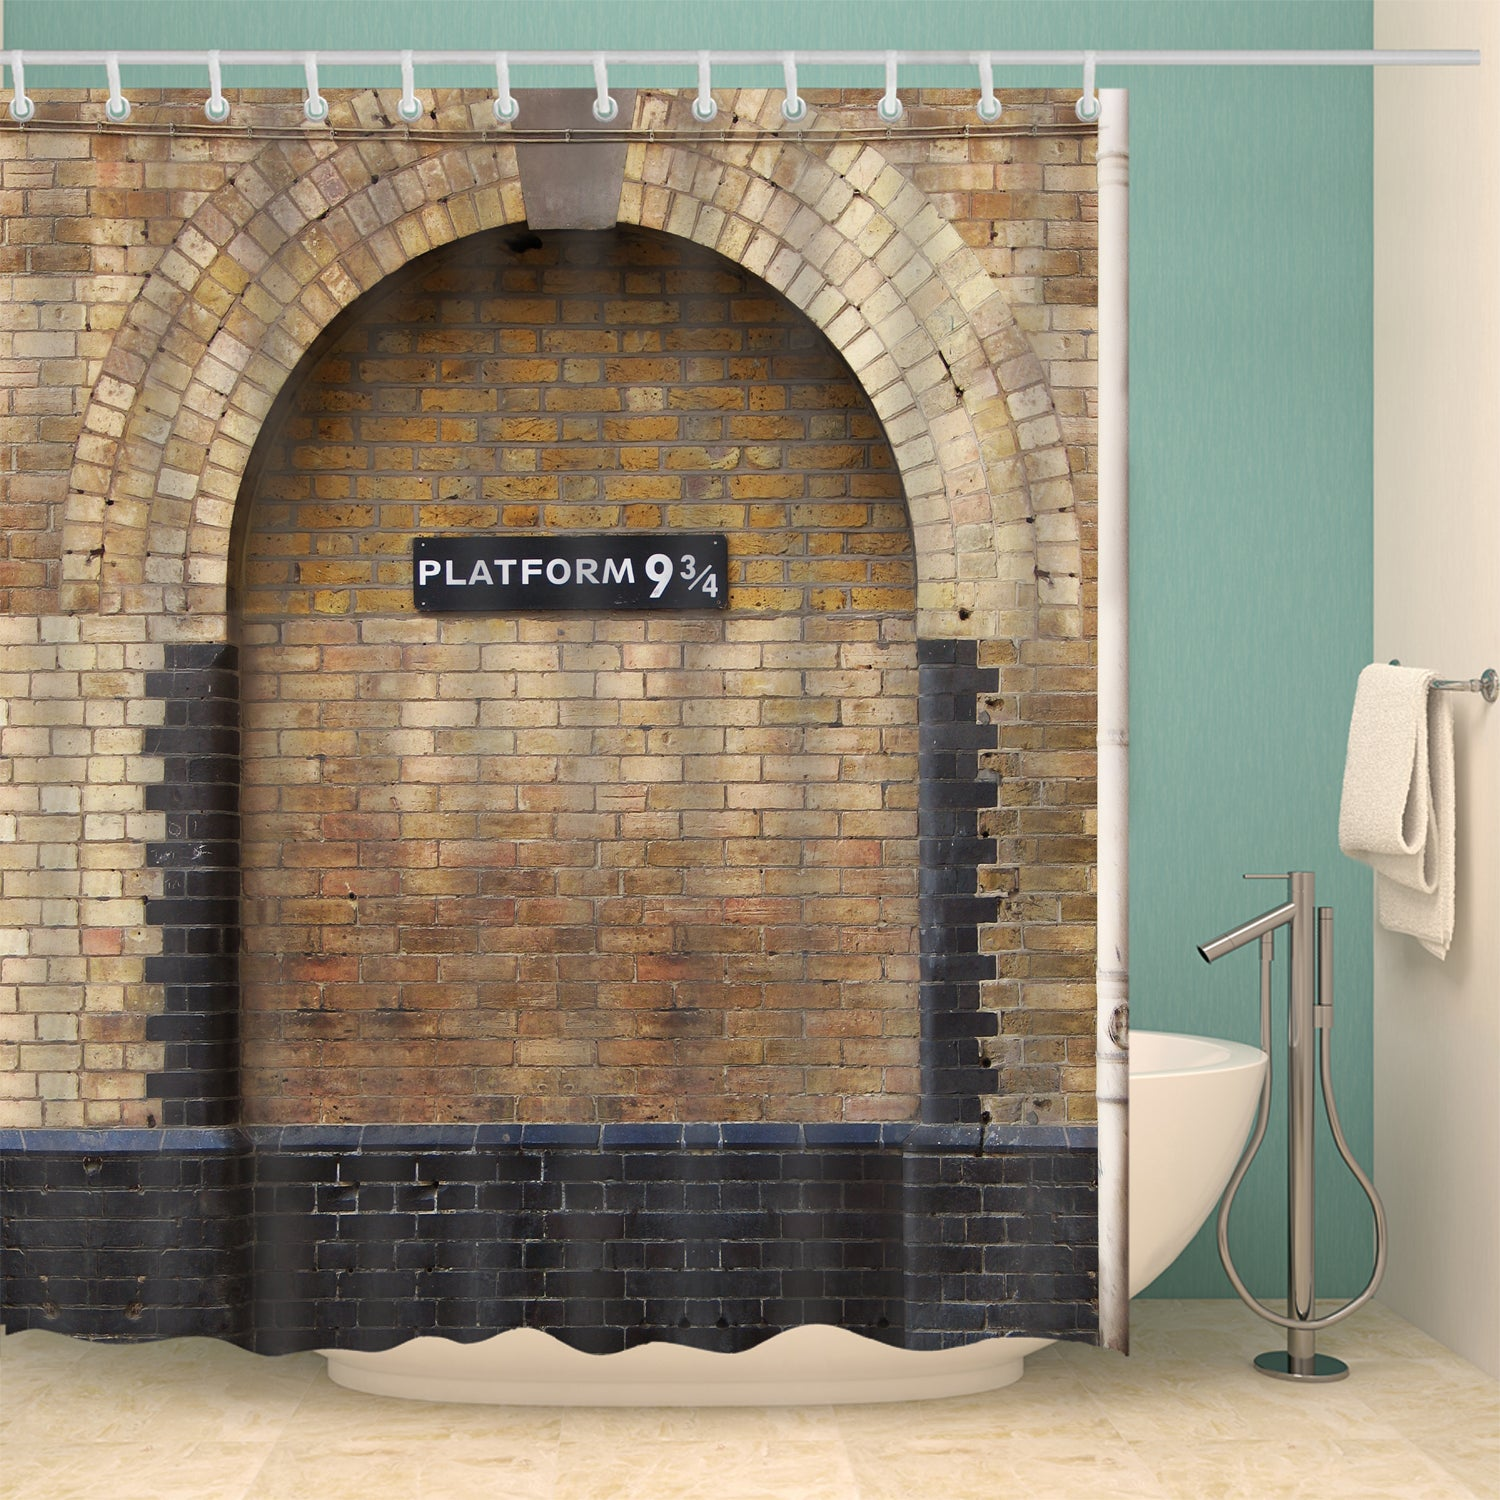 Harry Potter King's Cross Railway Station Platform 9 3/4 Shower Curtain